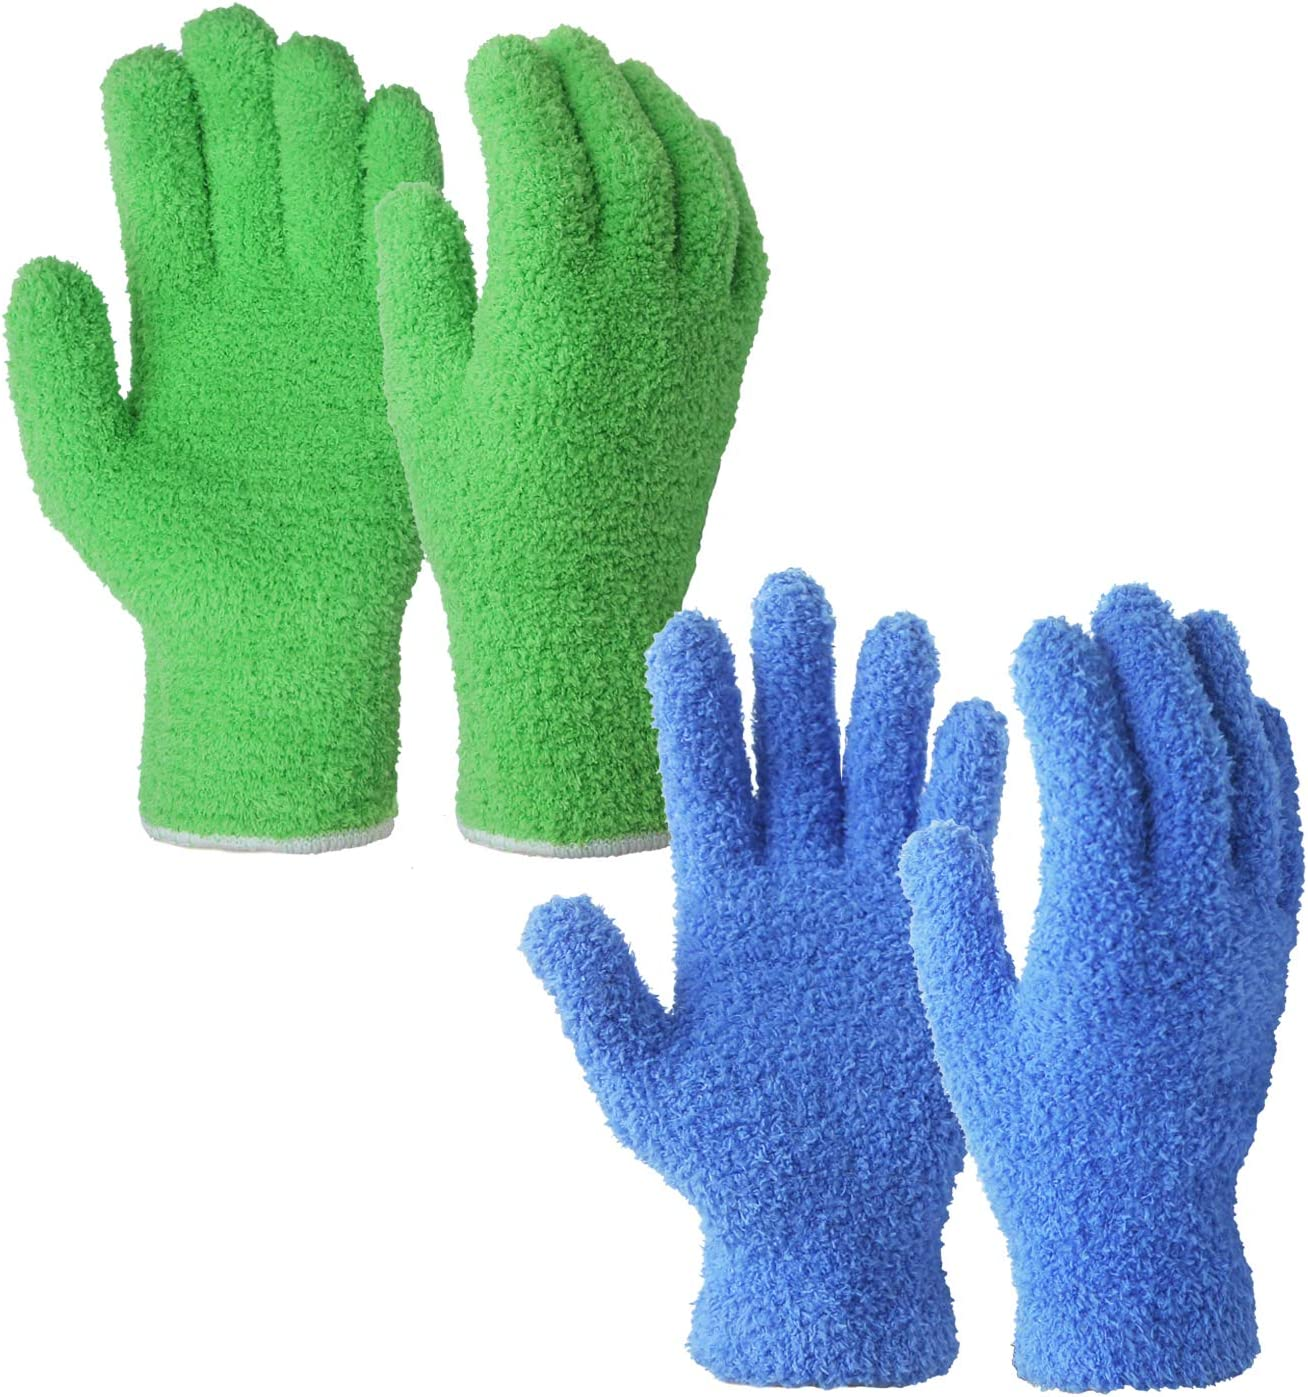 EvridWear Microfiber Auto Dusting Cleaning Gloves for House Cleaning (Multi-Pack)